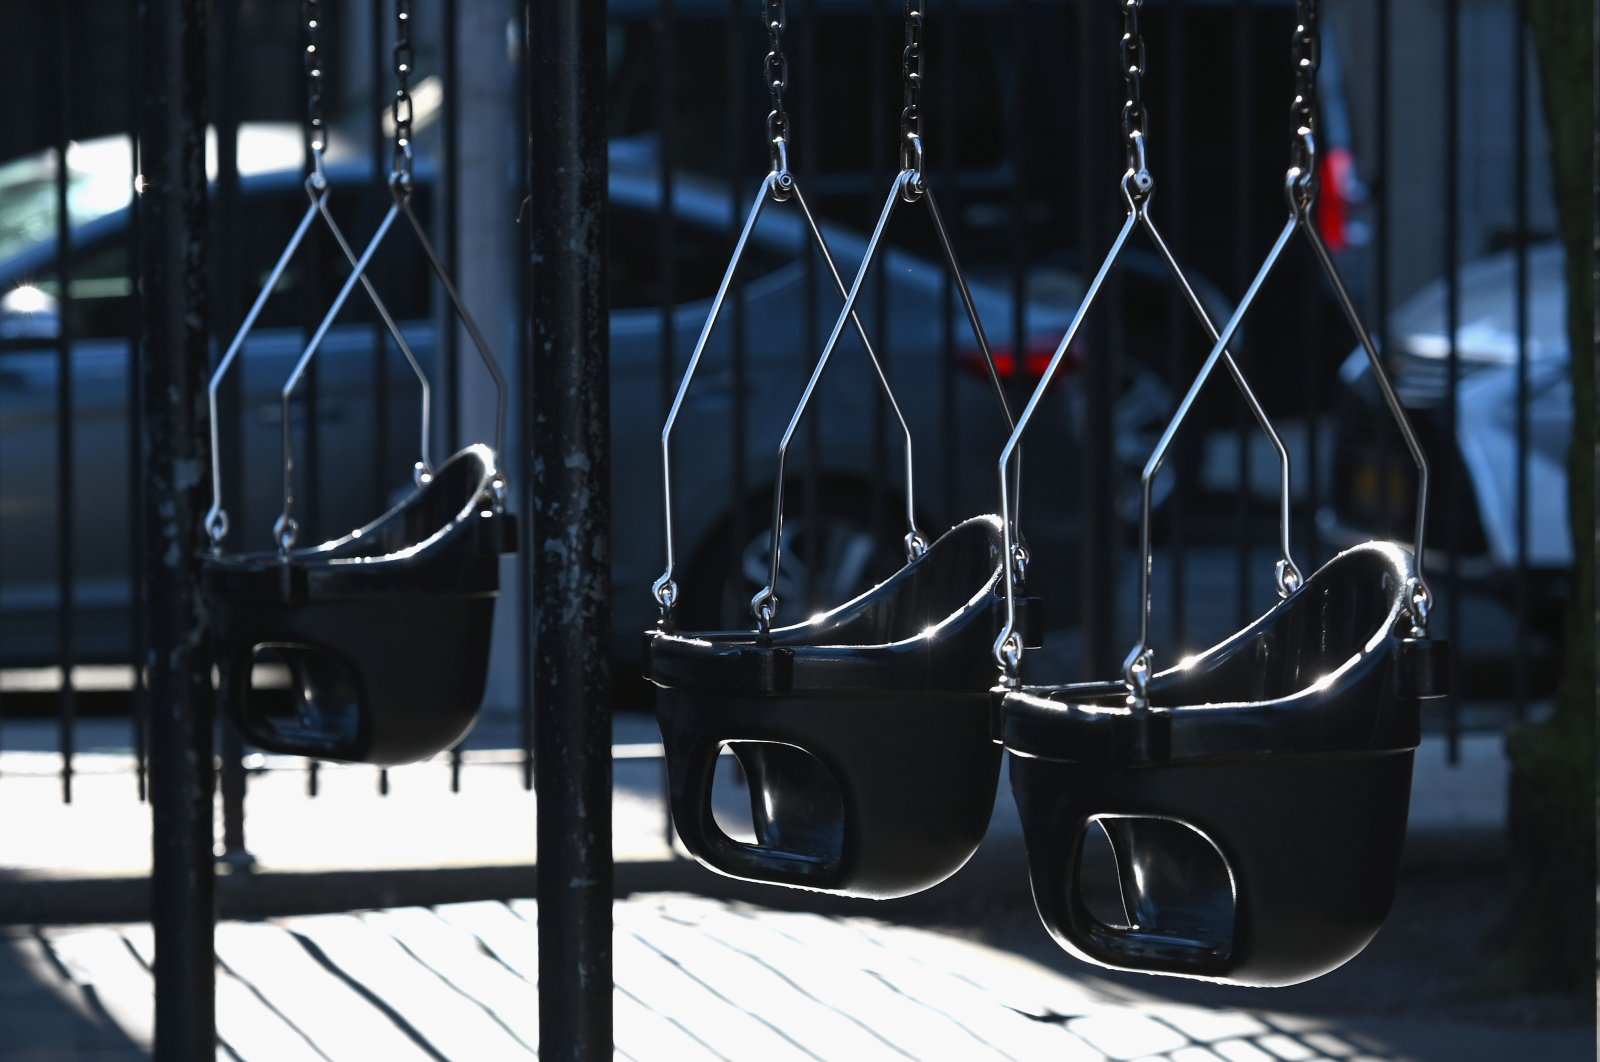 Empty swings are seen on a playground, New York City, Tuesday, March 24, 2020. (AFP Photo)